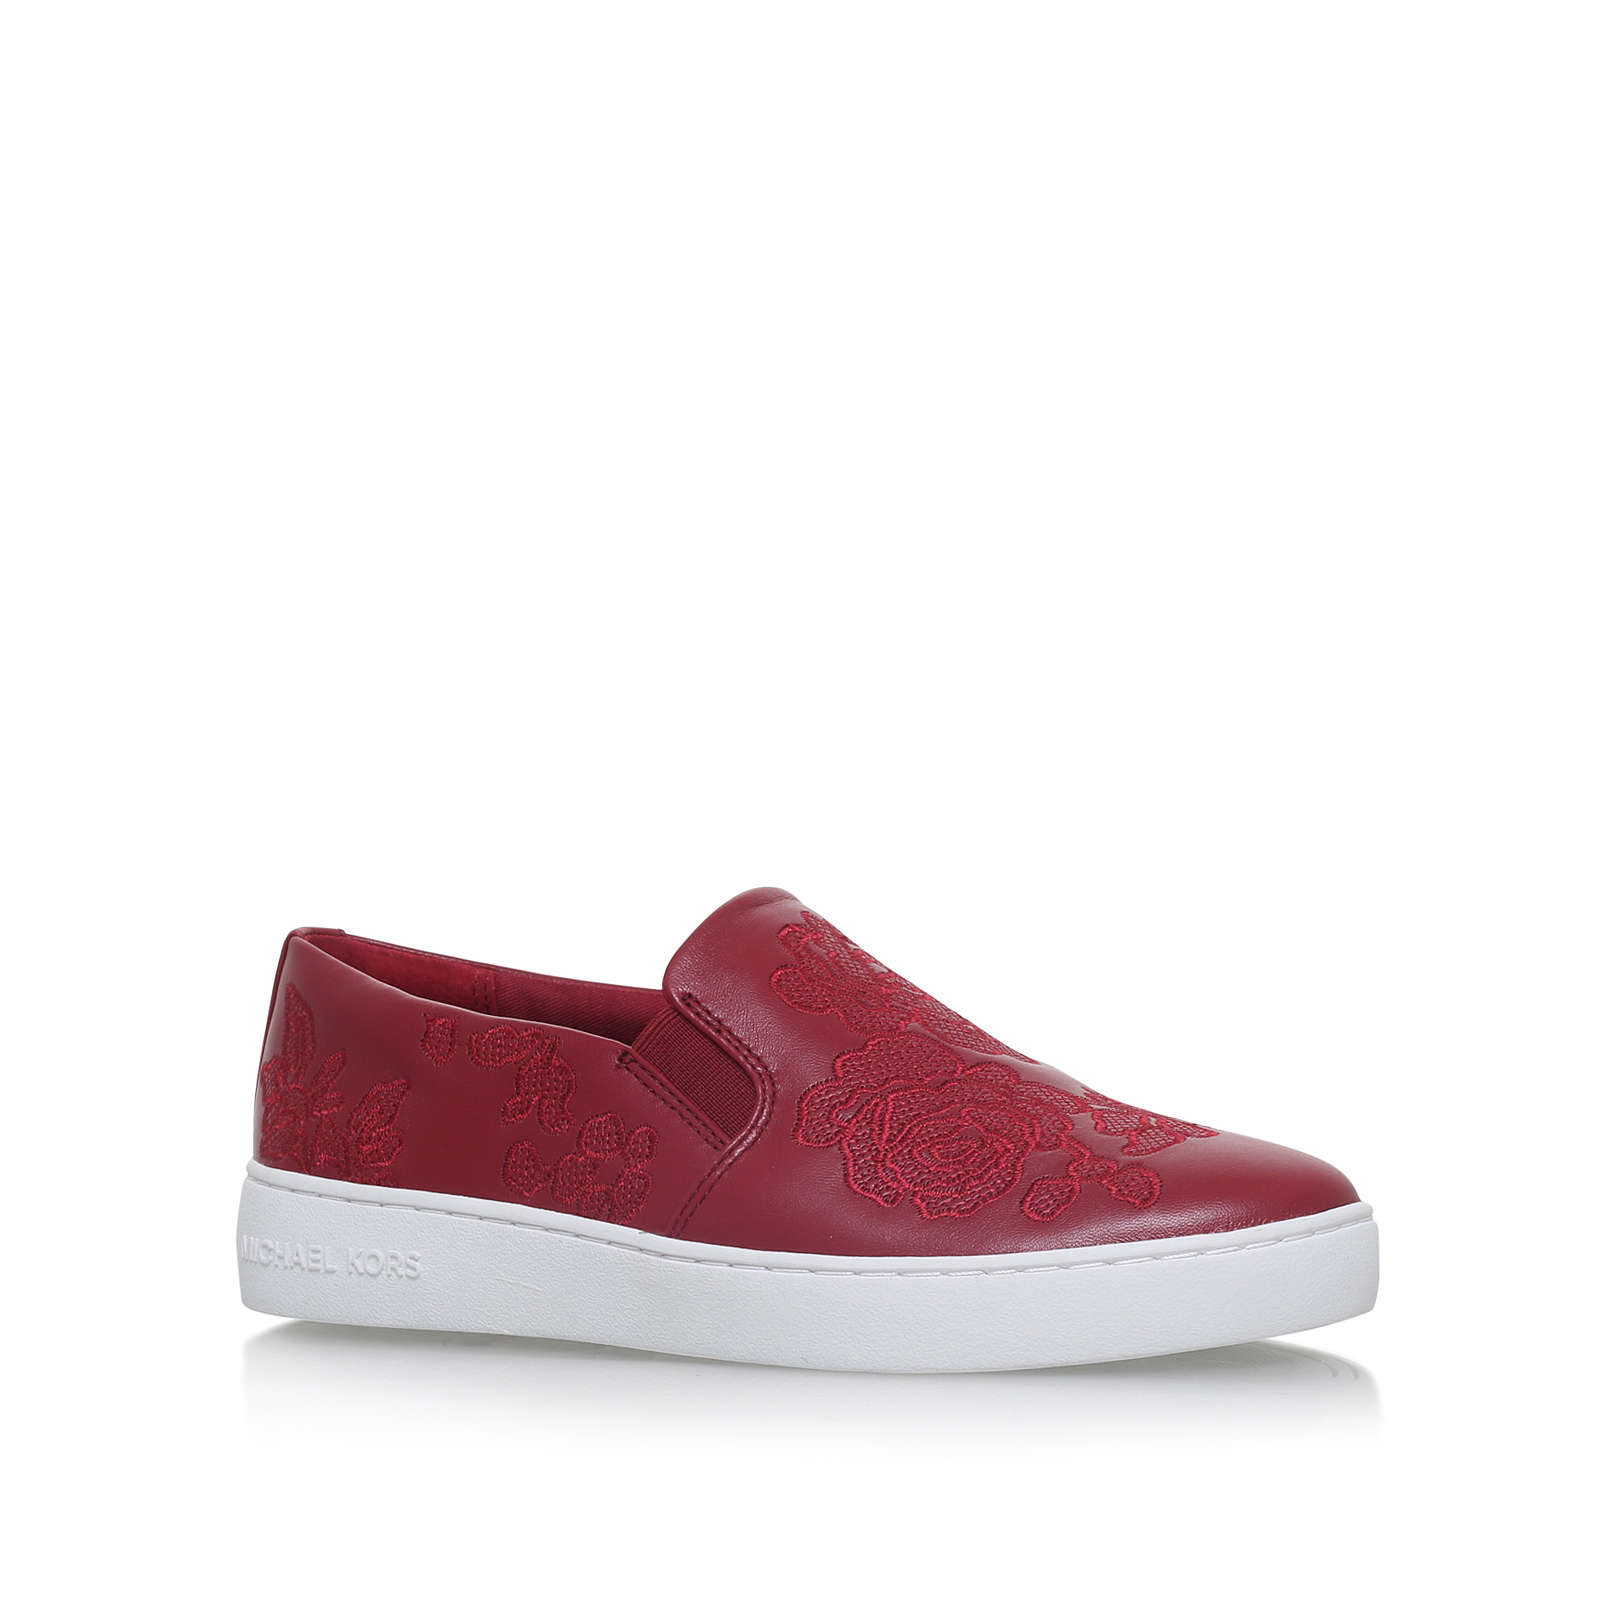 Womens Michael Kors Shoes Trainers Shoeaholics Flash  Olivia Sneakers Keaton Slip On From